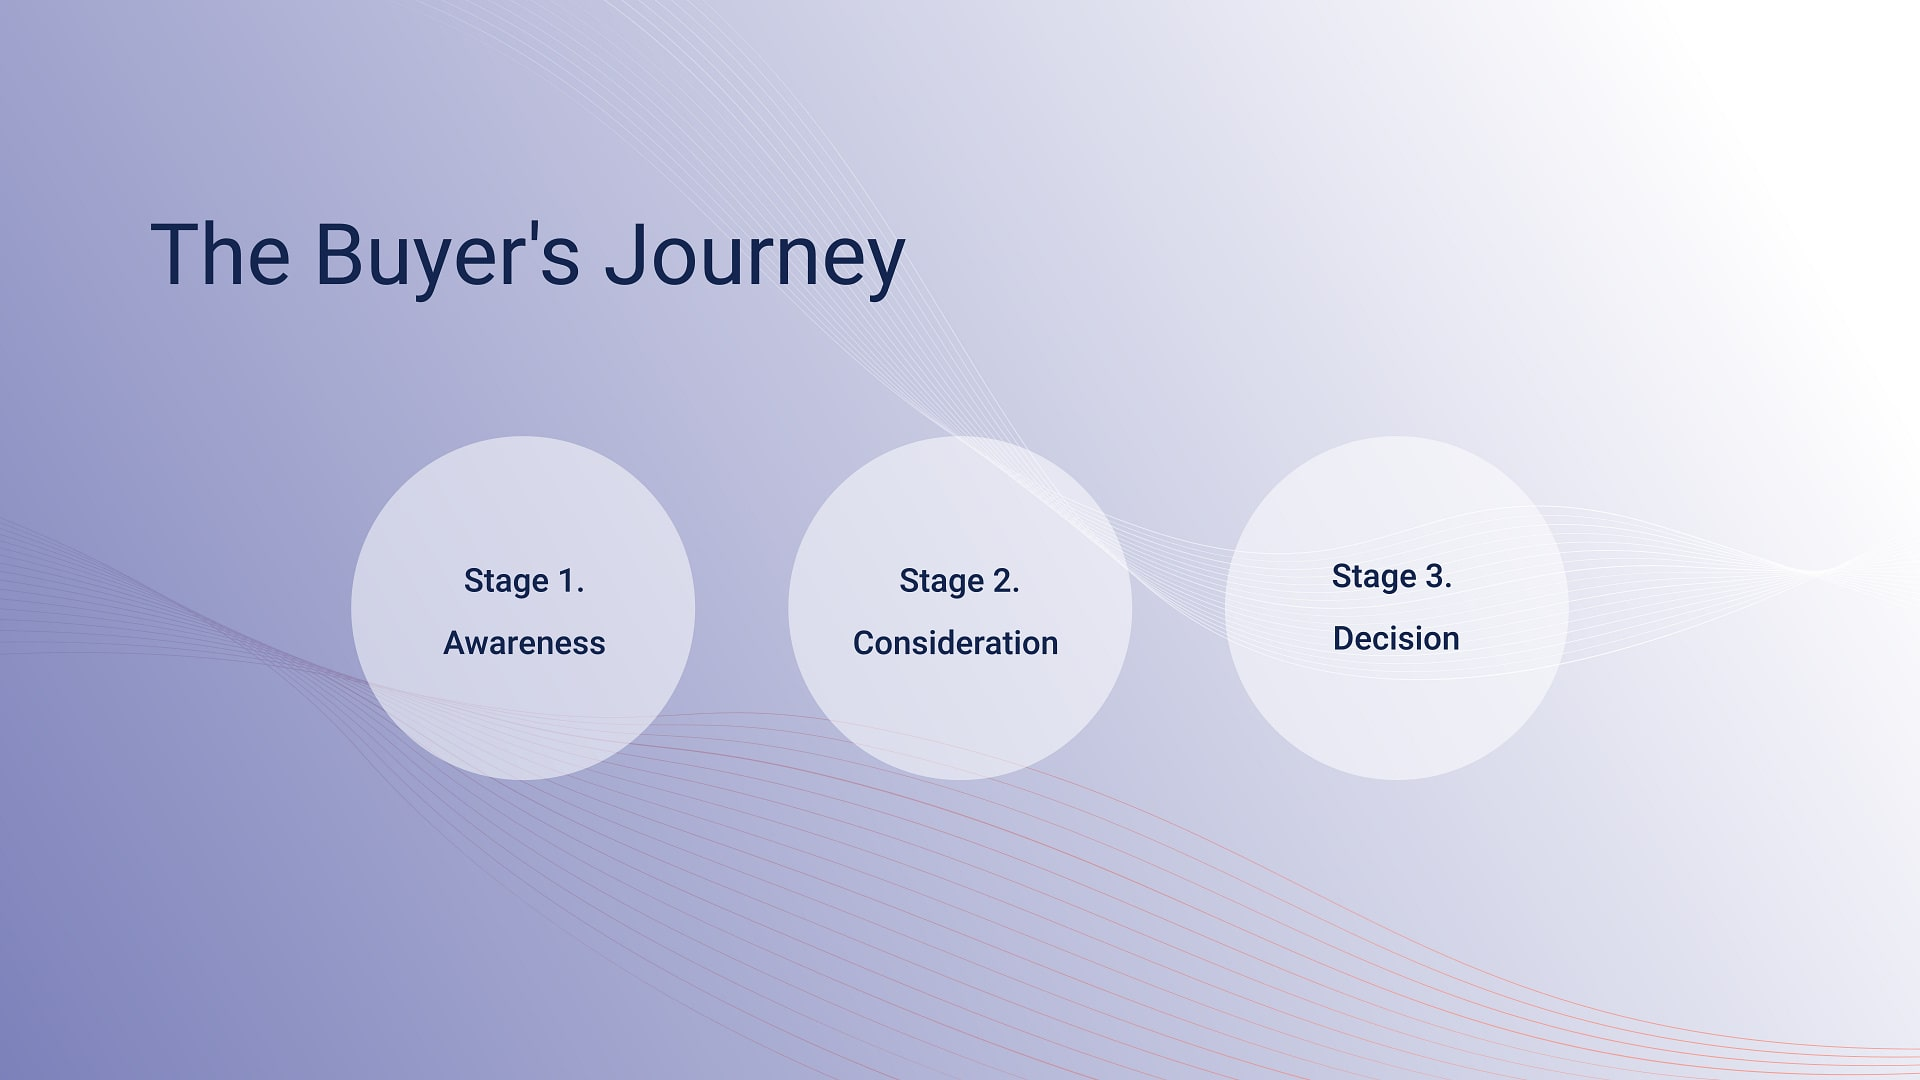 Stages of the buyer's journey